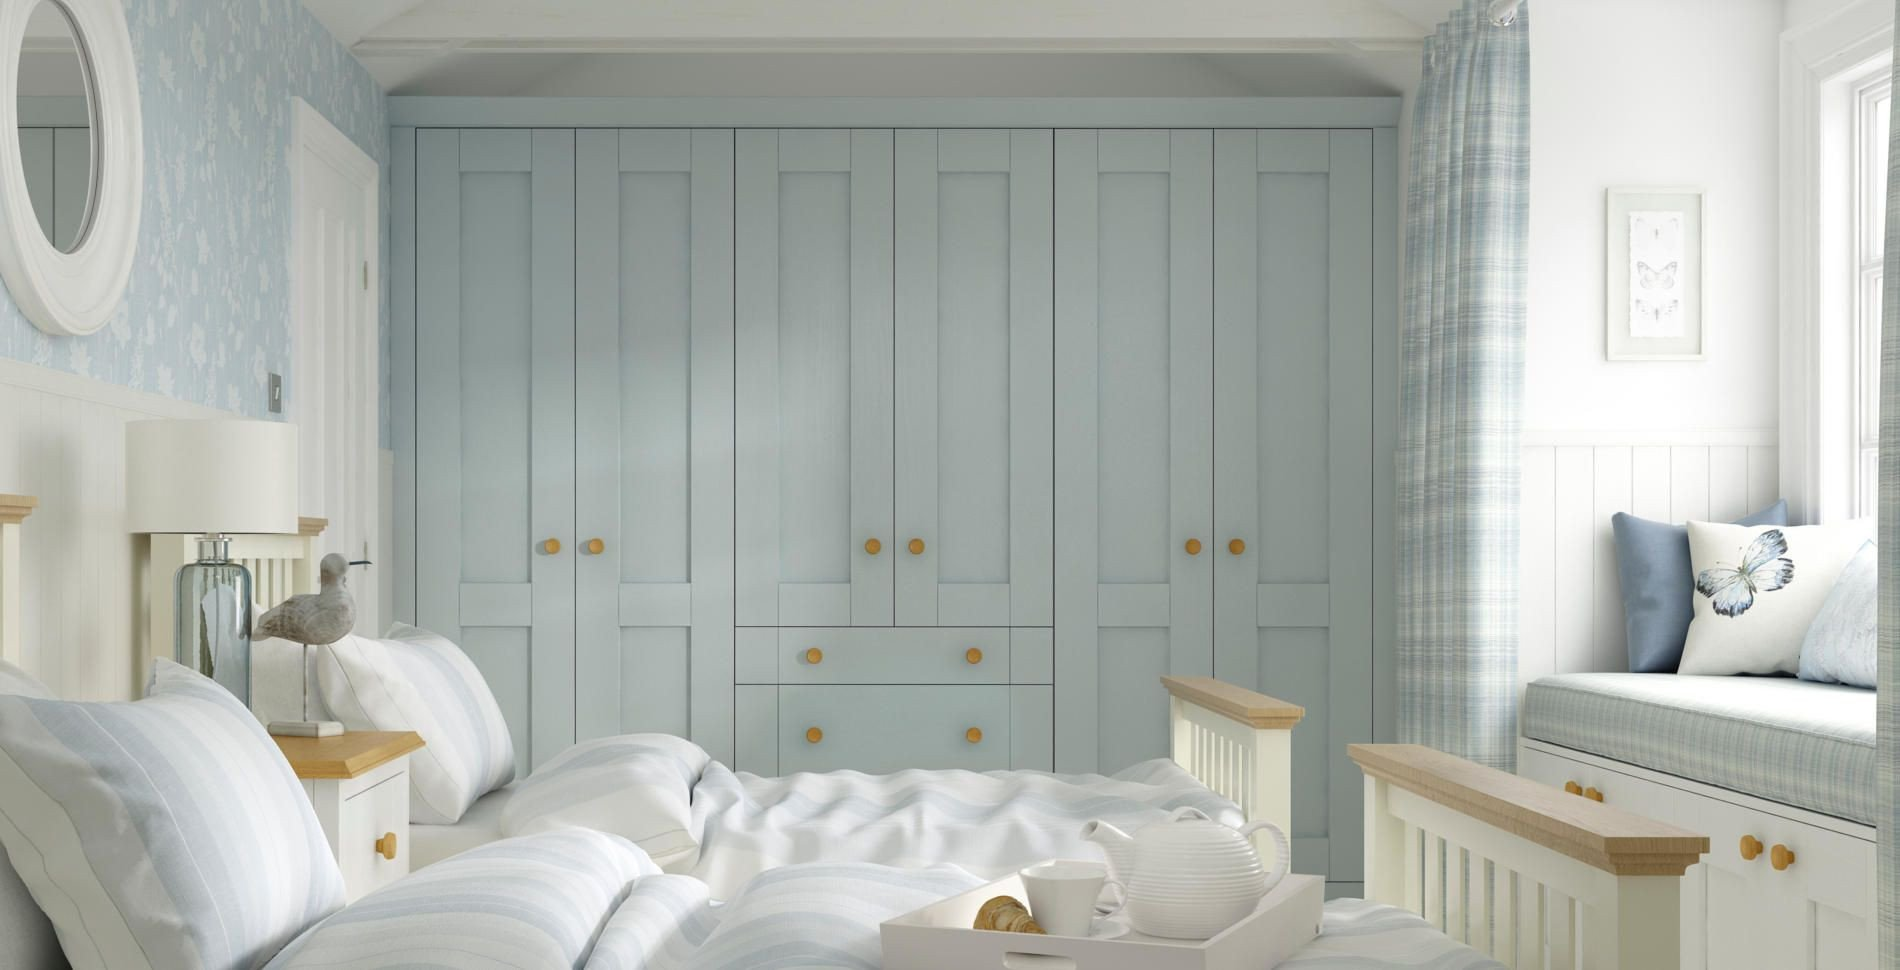 Laura ashley Bedroom Set Inspirational Laura ashley Fitted Bedroom Collection In 2019